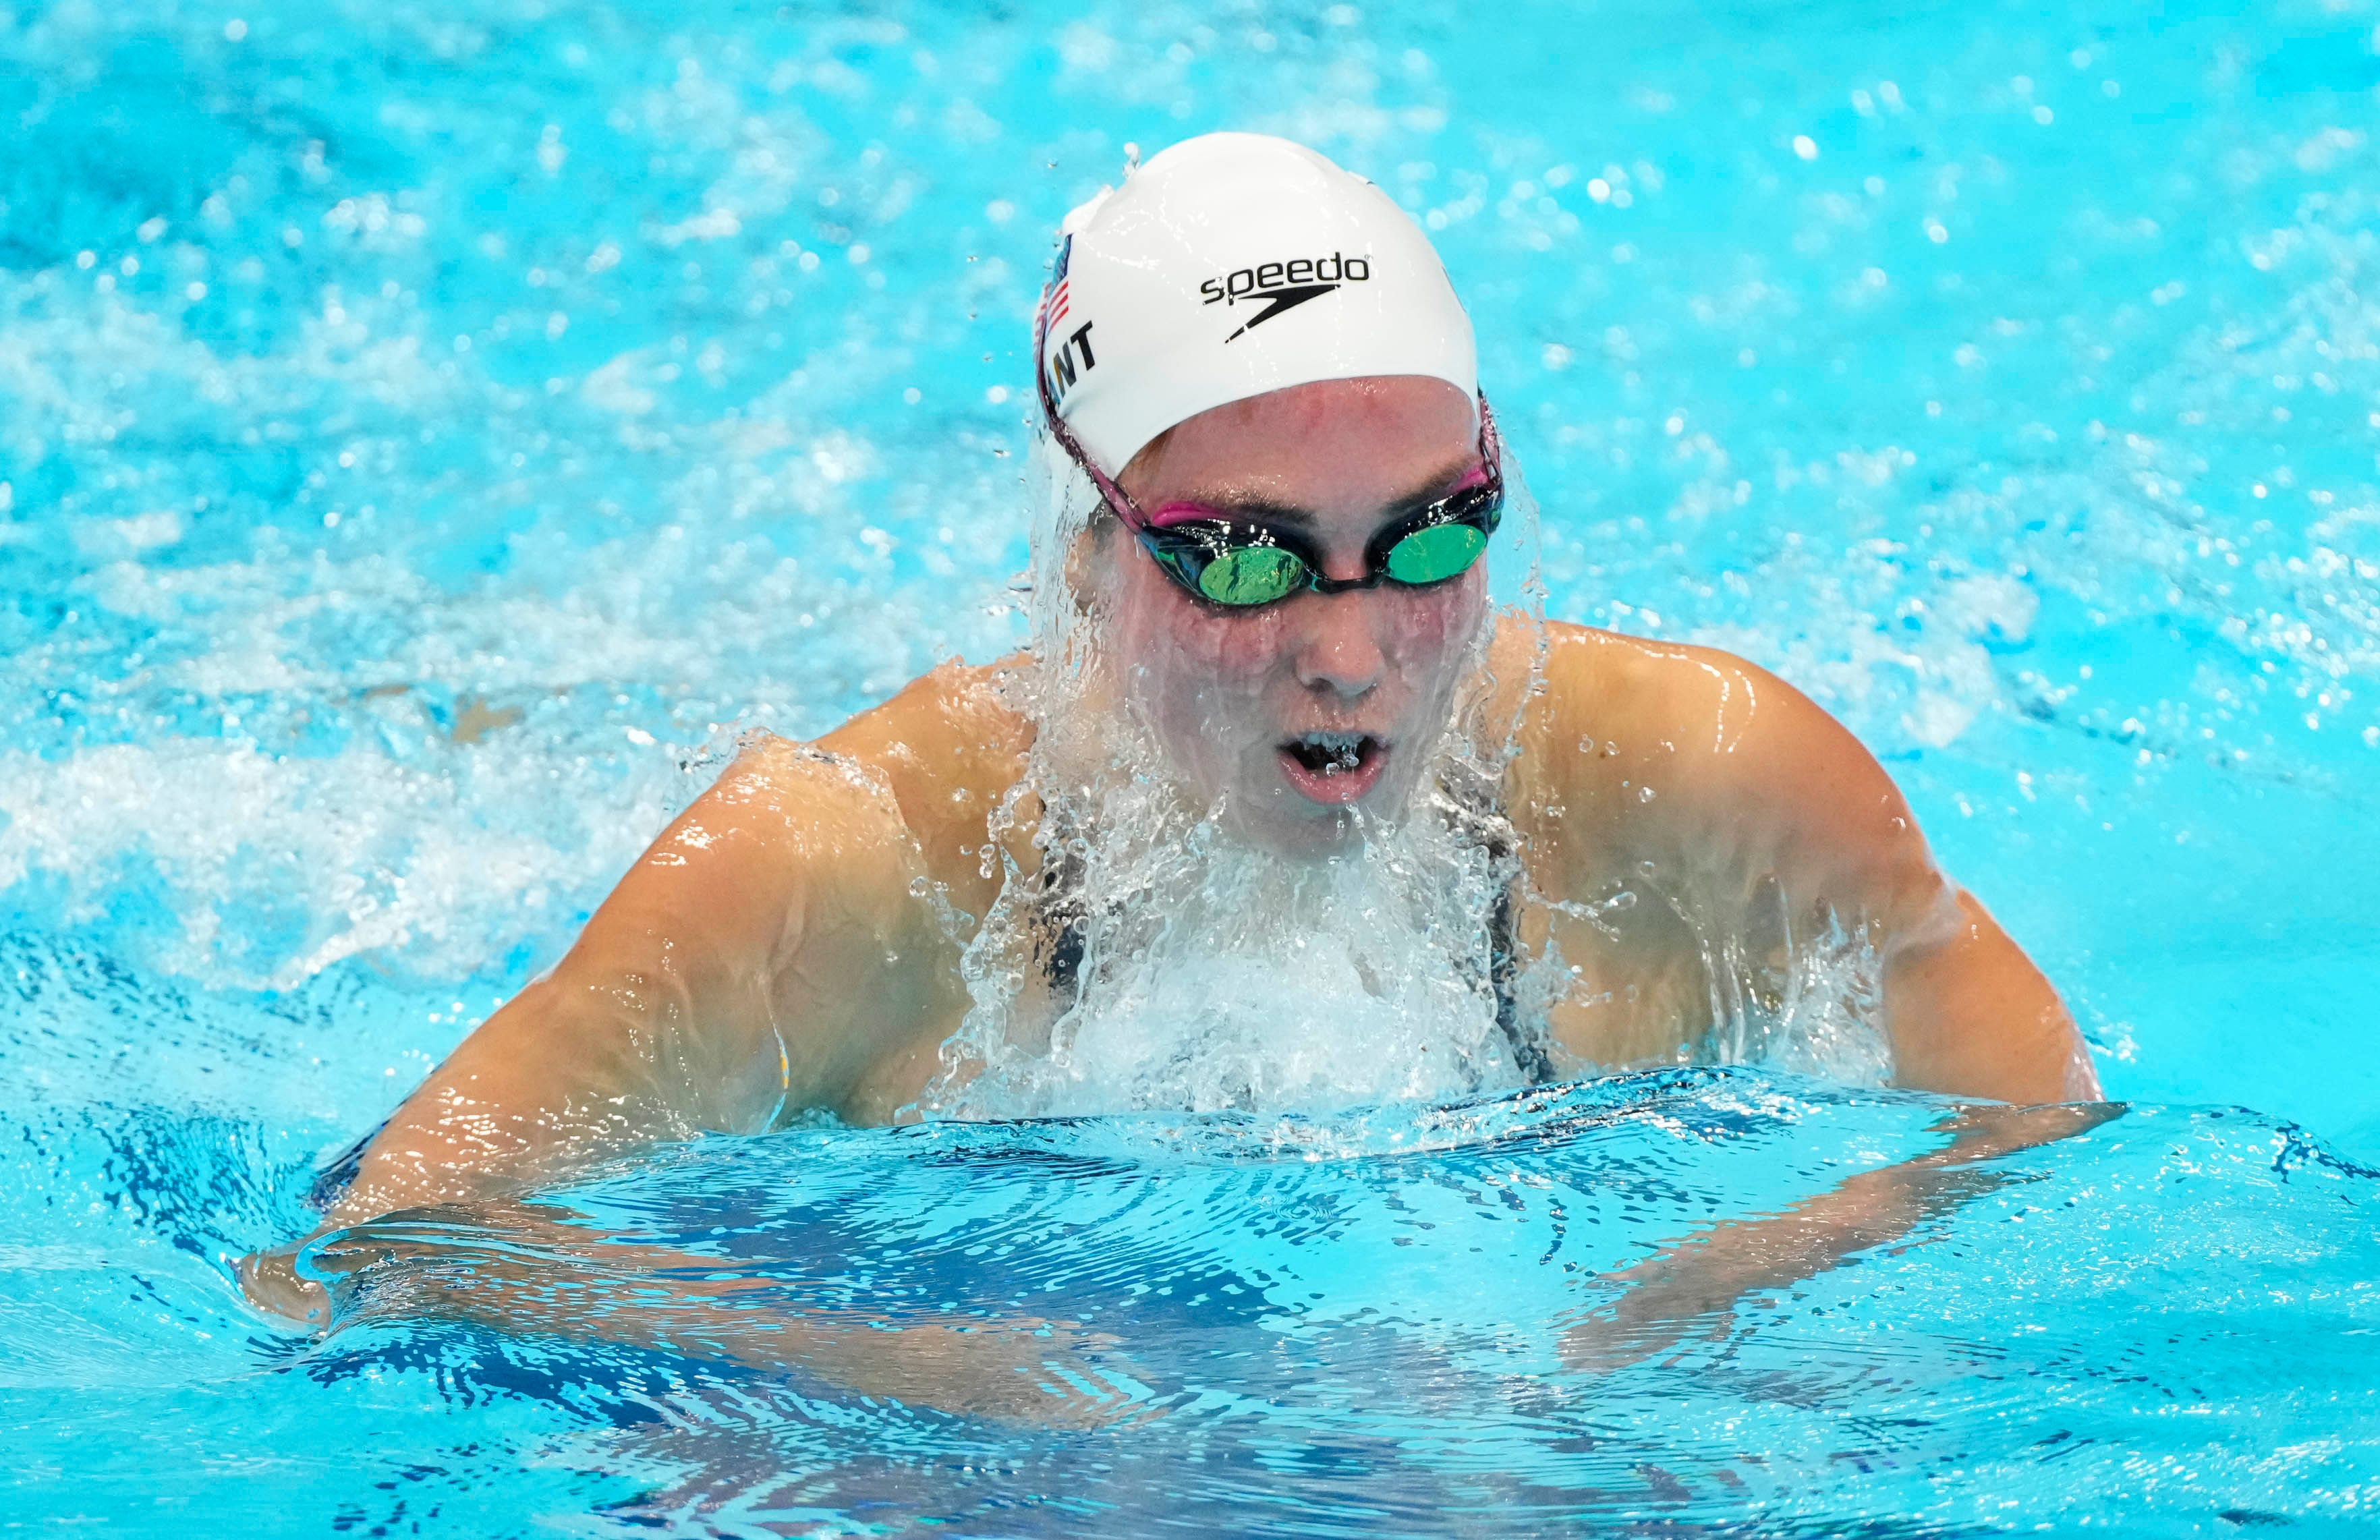 Swimmer Emma Weyant cruises in 400-meter individual medley to top lane spot in Tokyo Olympics final